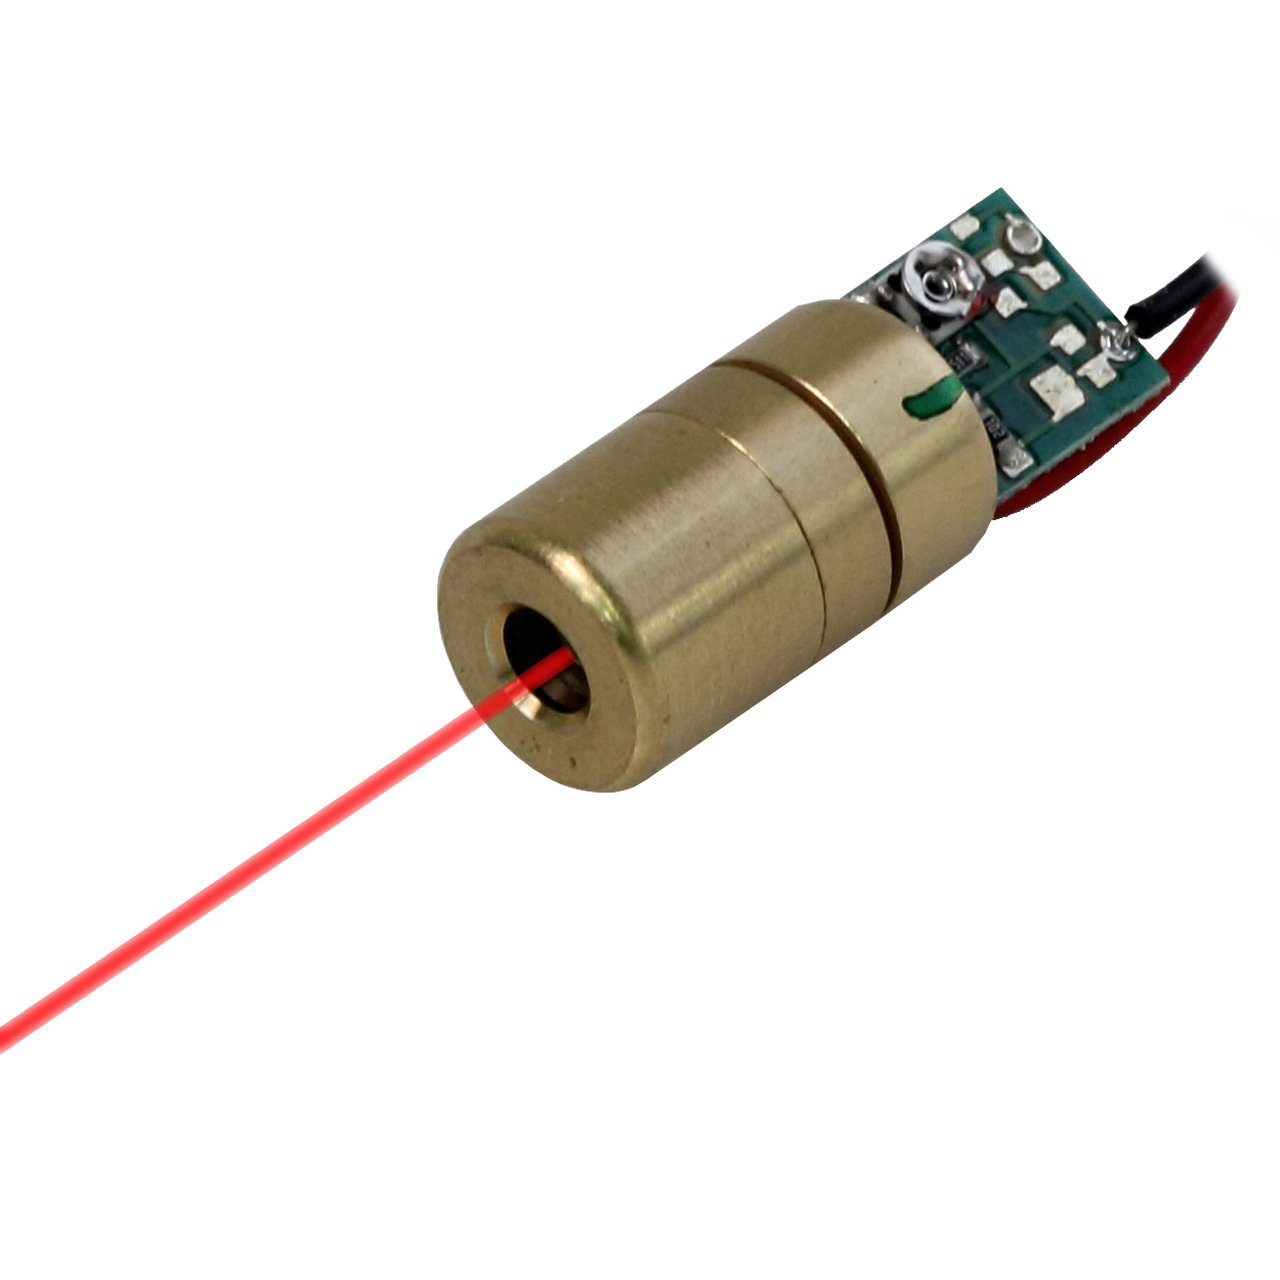 Quarton Laser Module VLM-650-02 LPT (ADJUSTABLE RED DOT LASER)